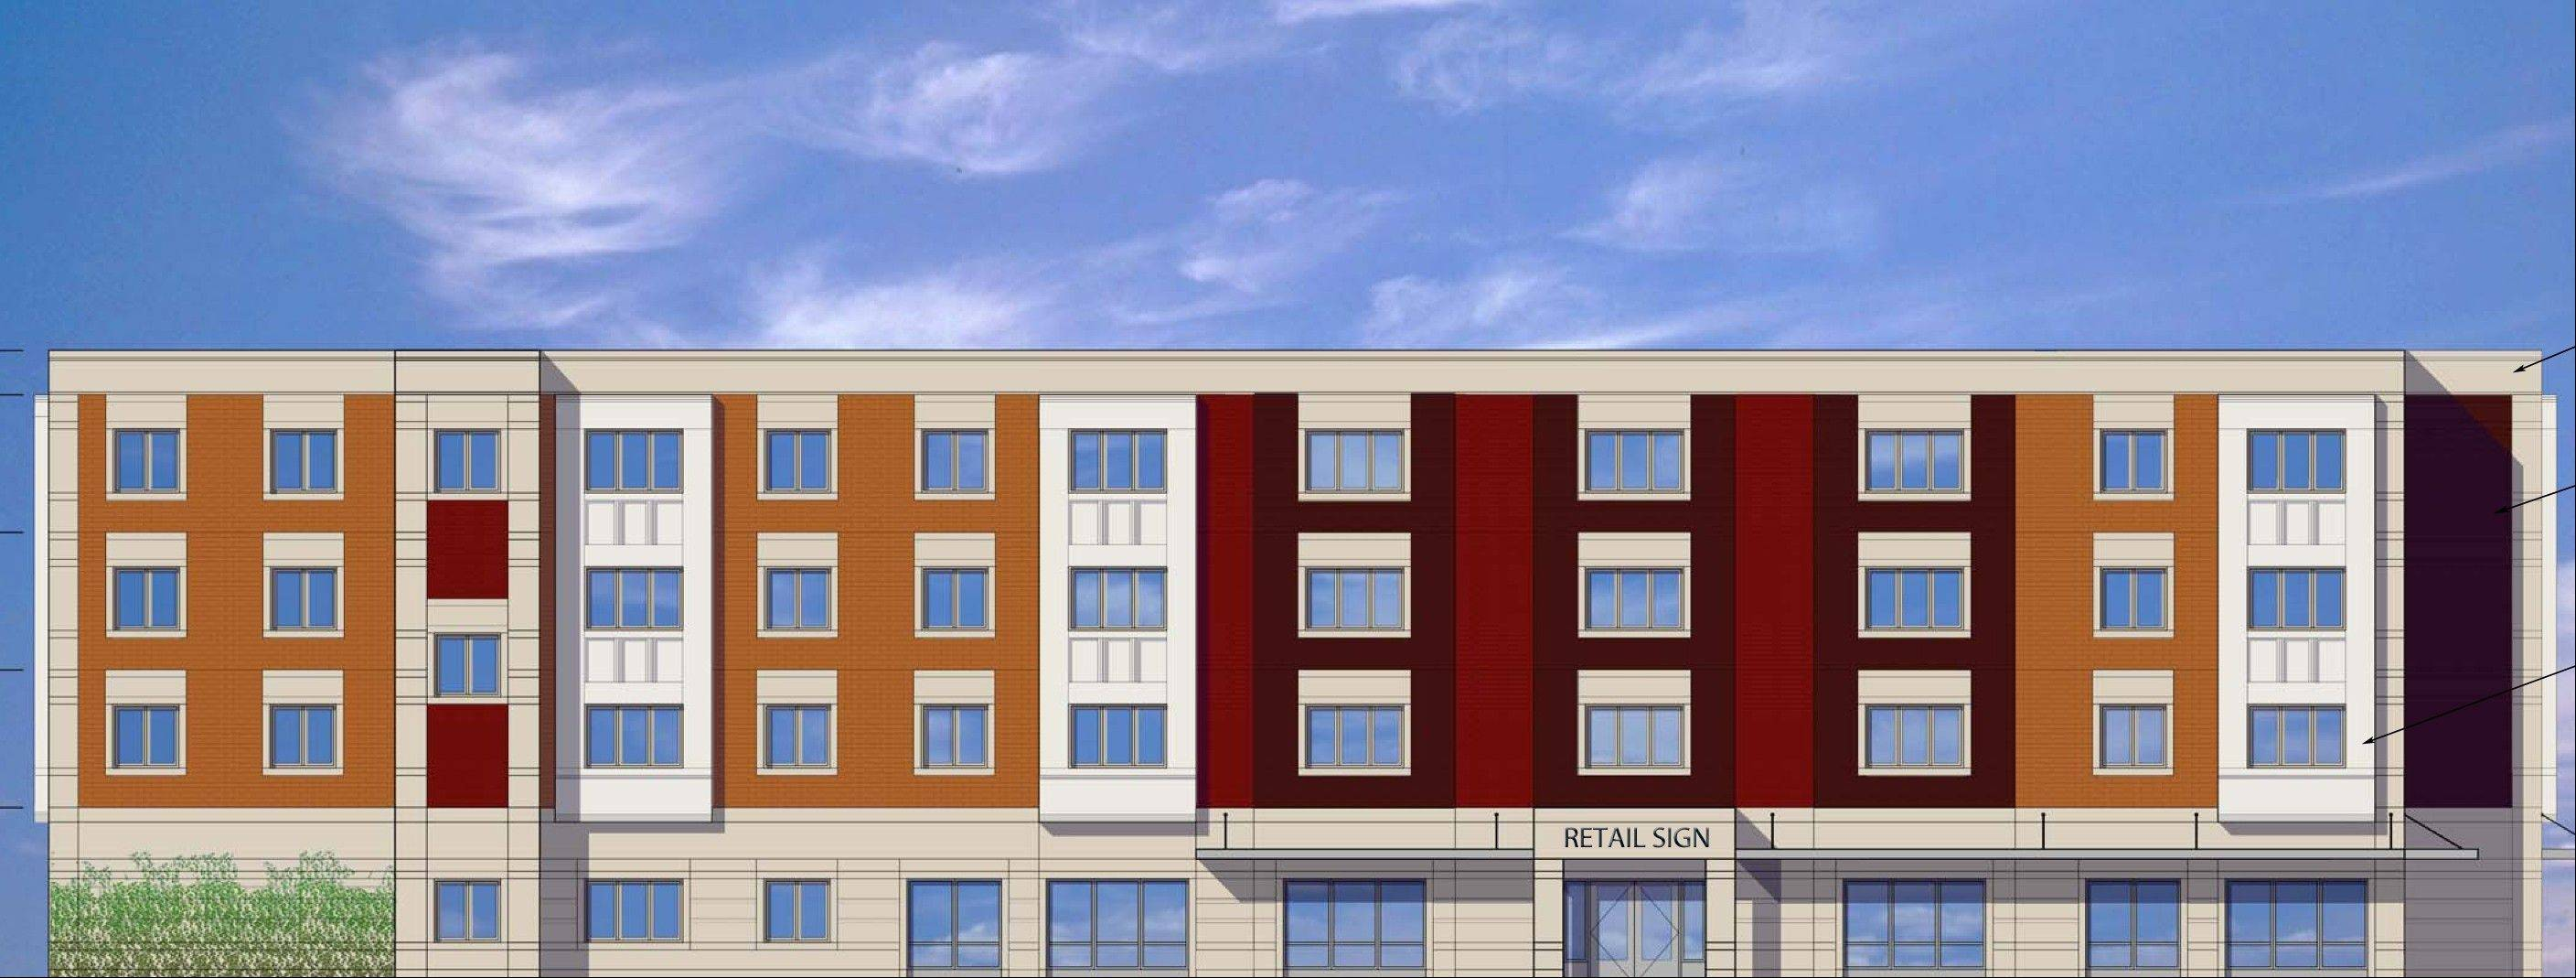 Mount Prospect OKs apartments for disabled, mentally ill residents